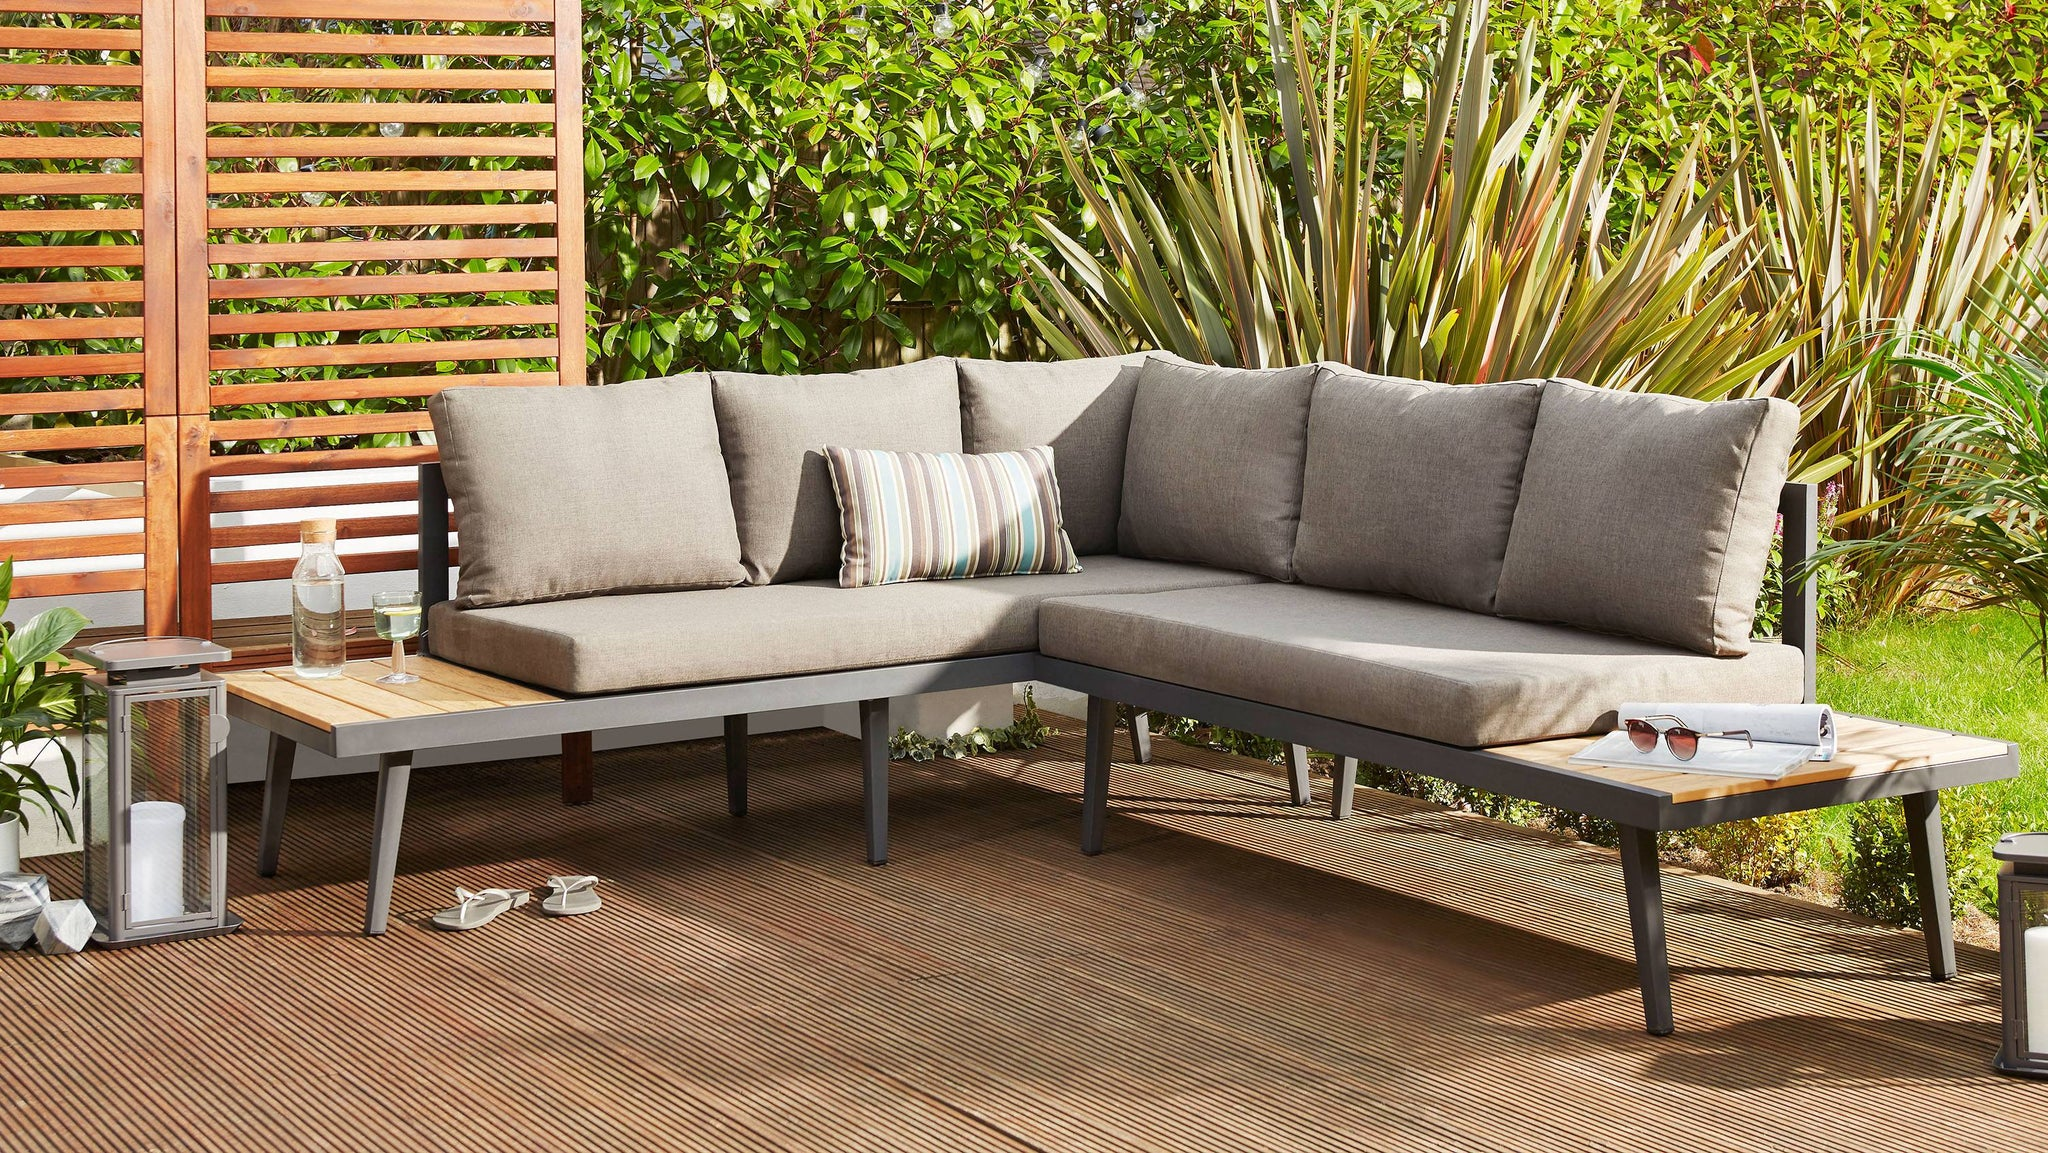 Large outdoor corner bench